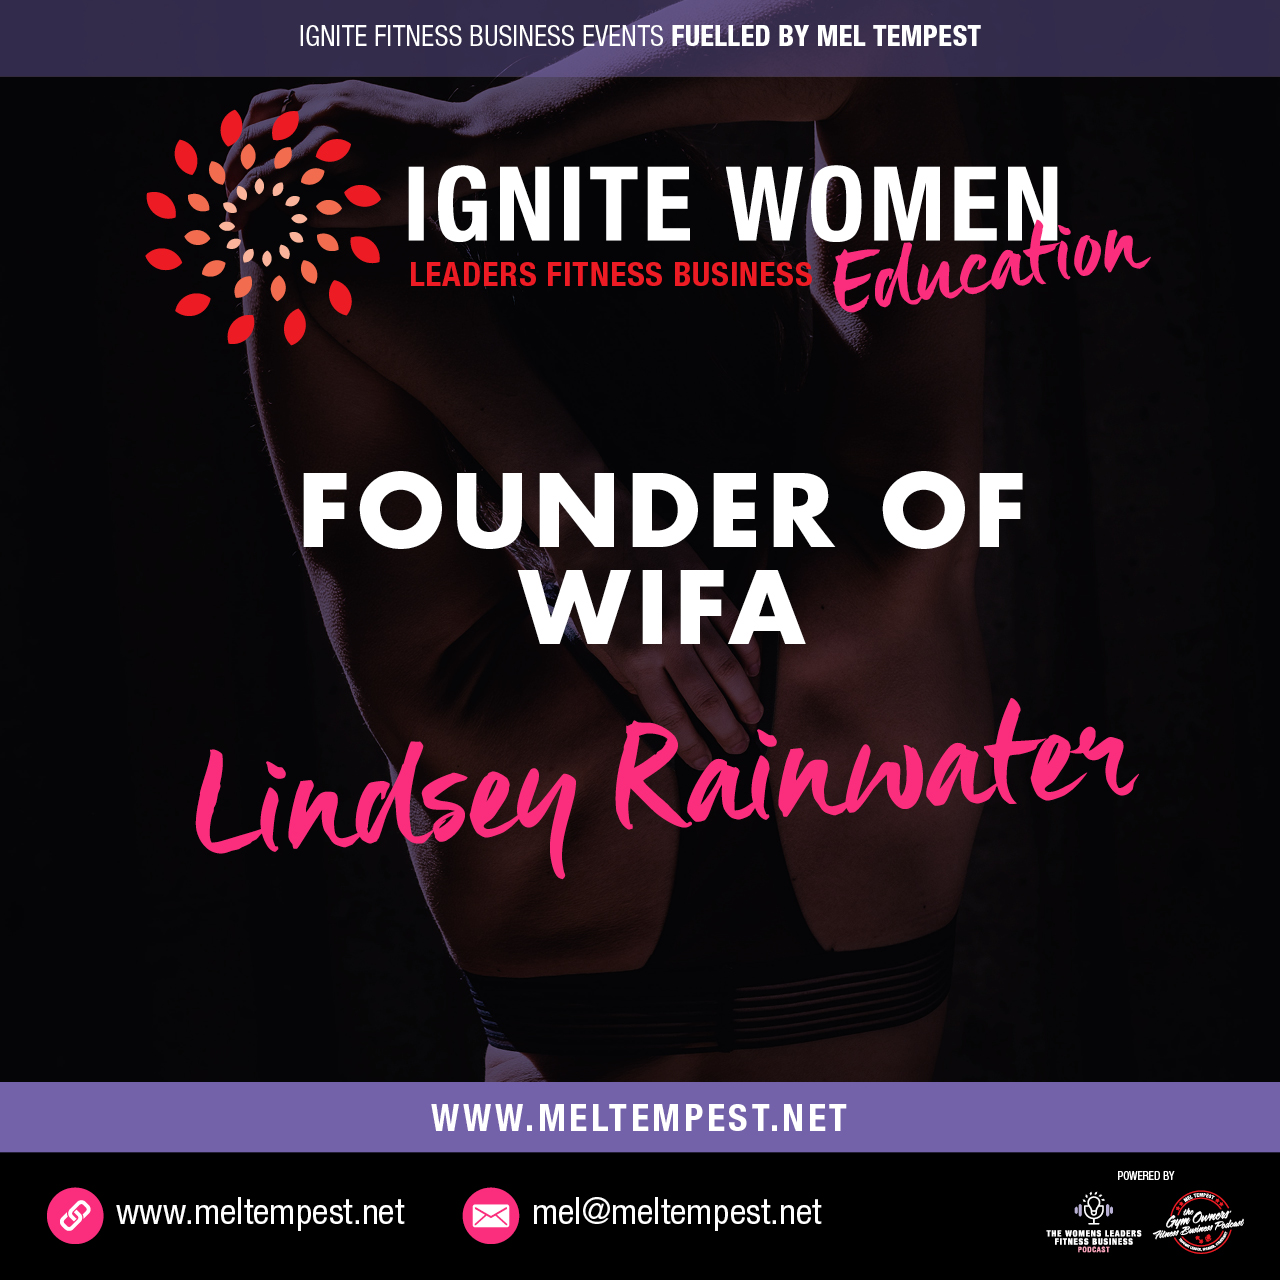 ignite women 202010